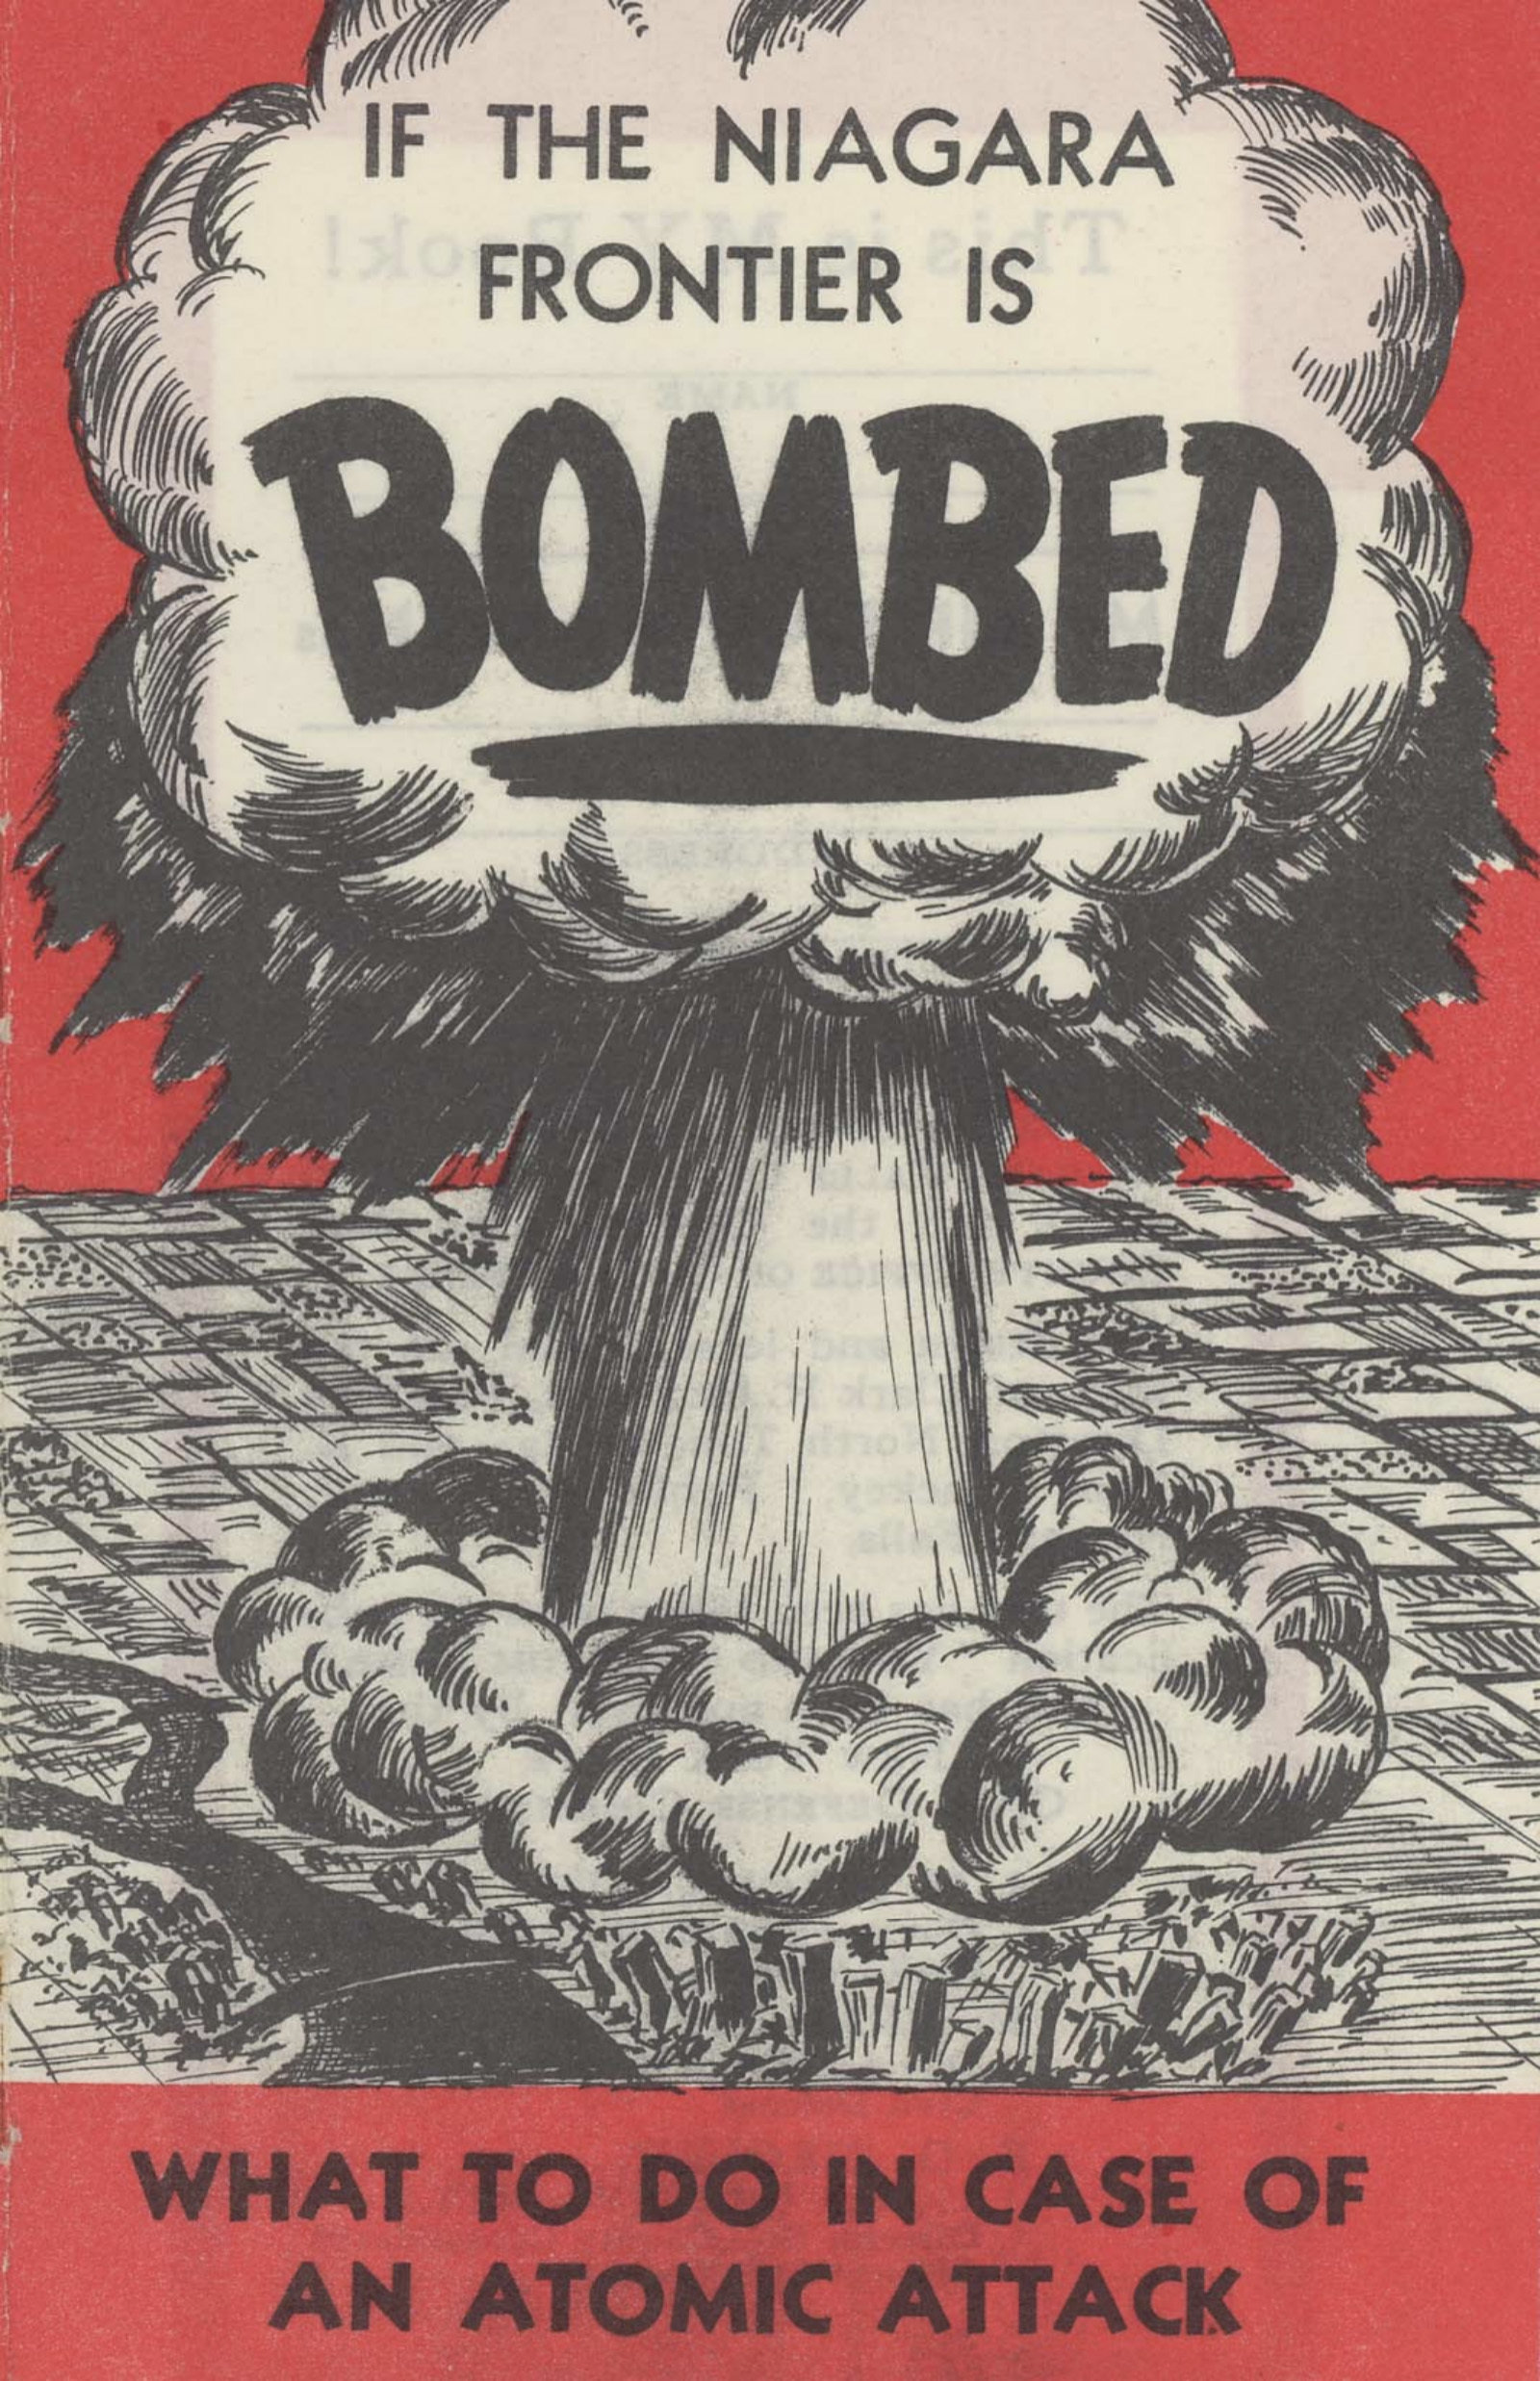 If the Niagara Frontier Is Bombed, pamphlet (c1950).jpg